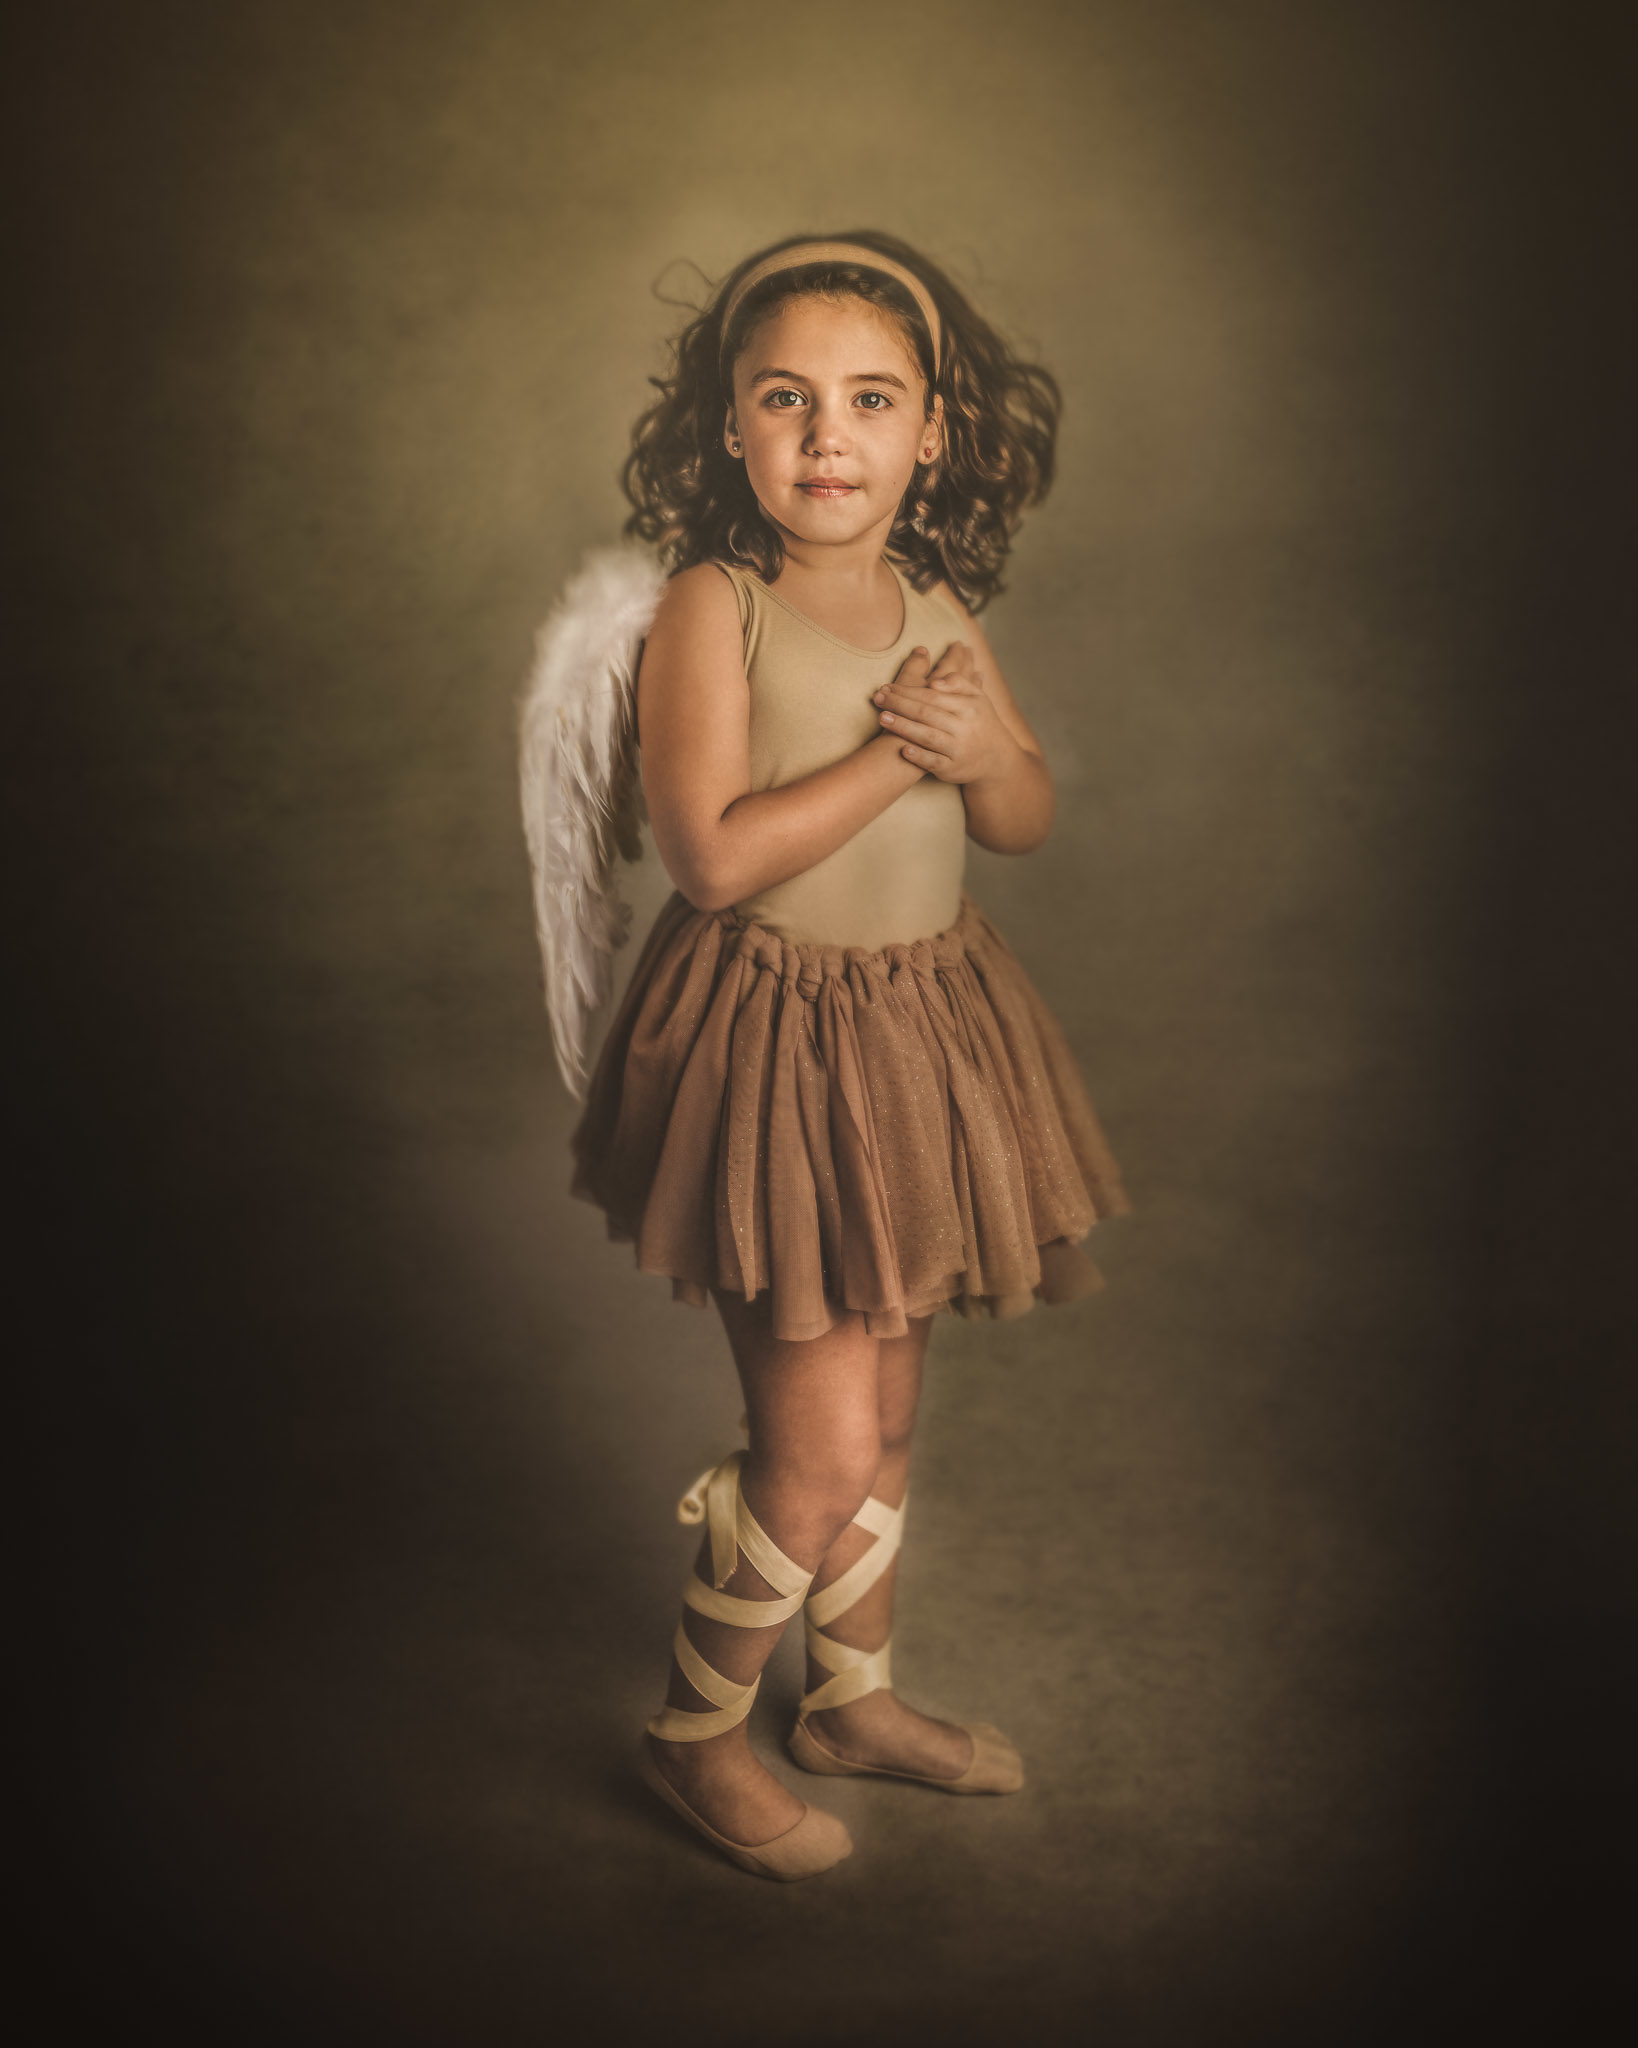 VALERIA (6 AÑOS) – LITTLE ANGELS 2018